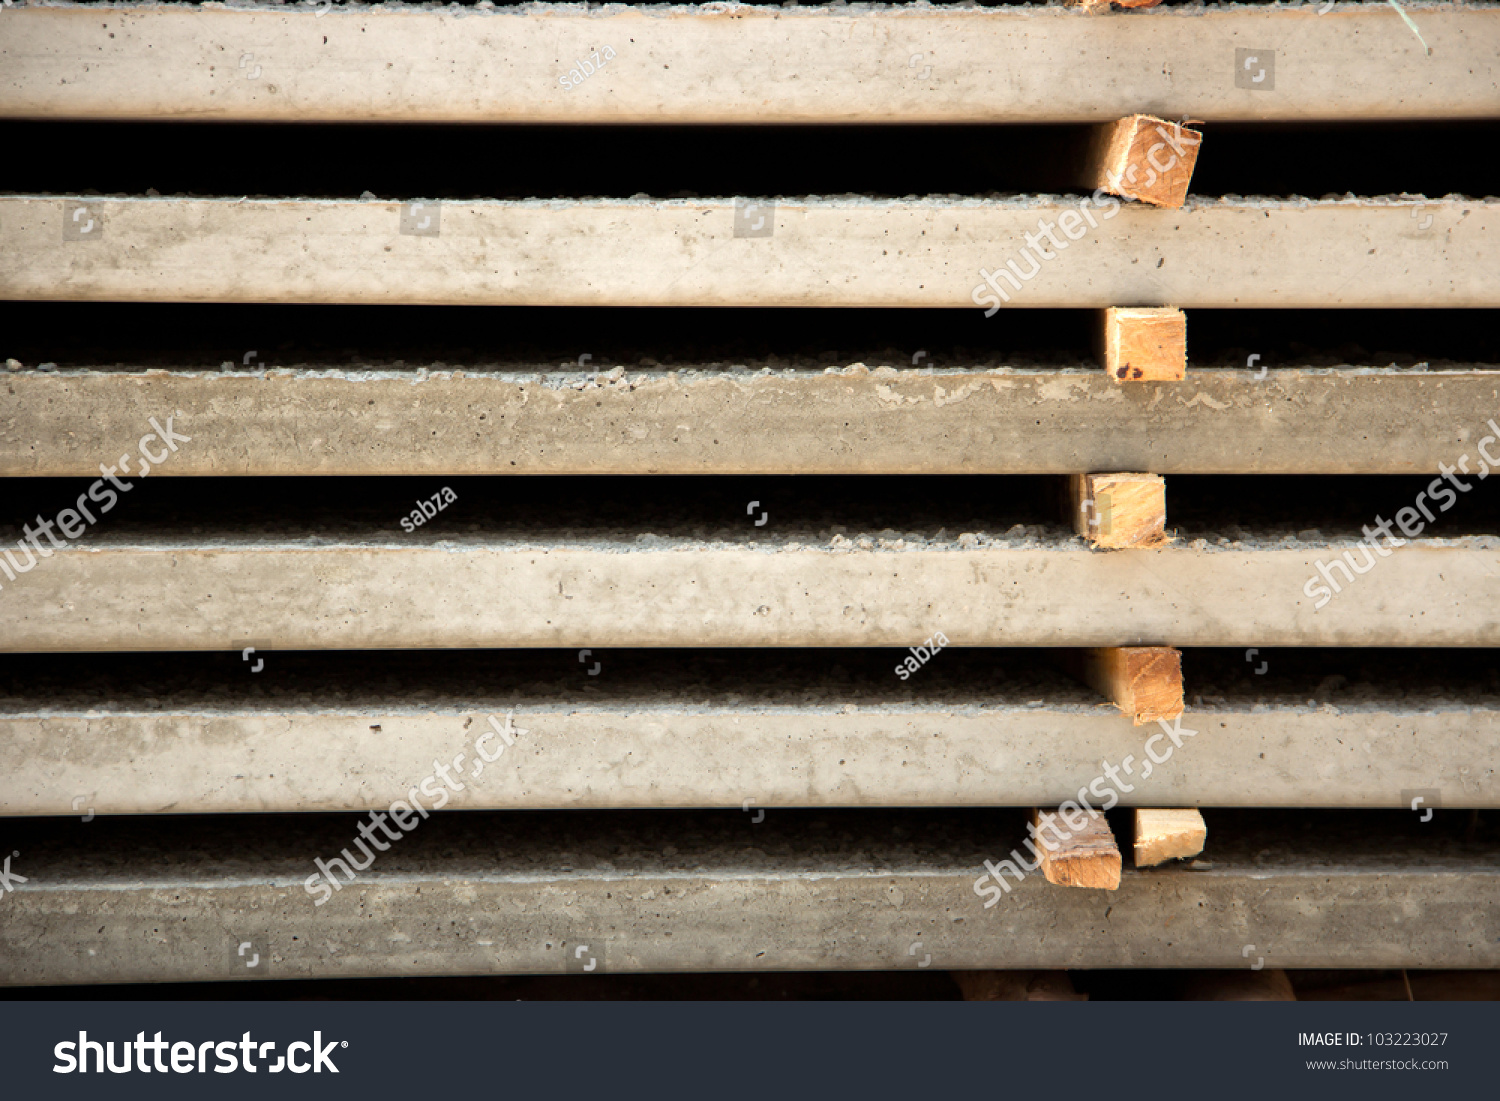 Ready Made Concrete : Ready made concrete slab stock photo shutterstock